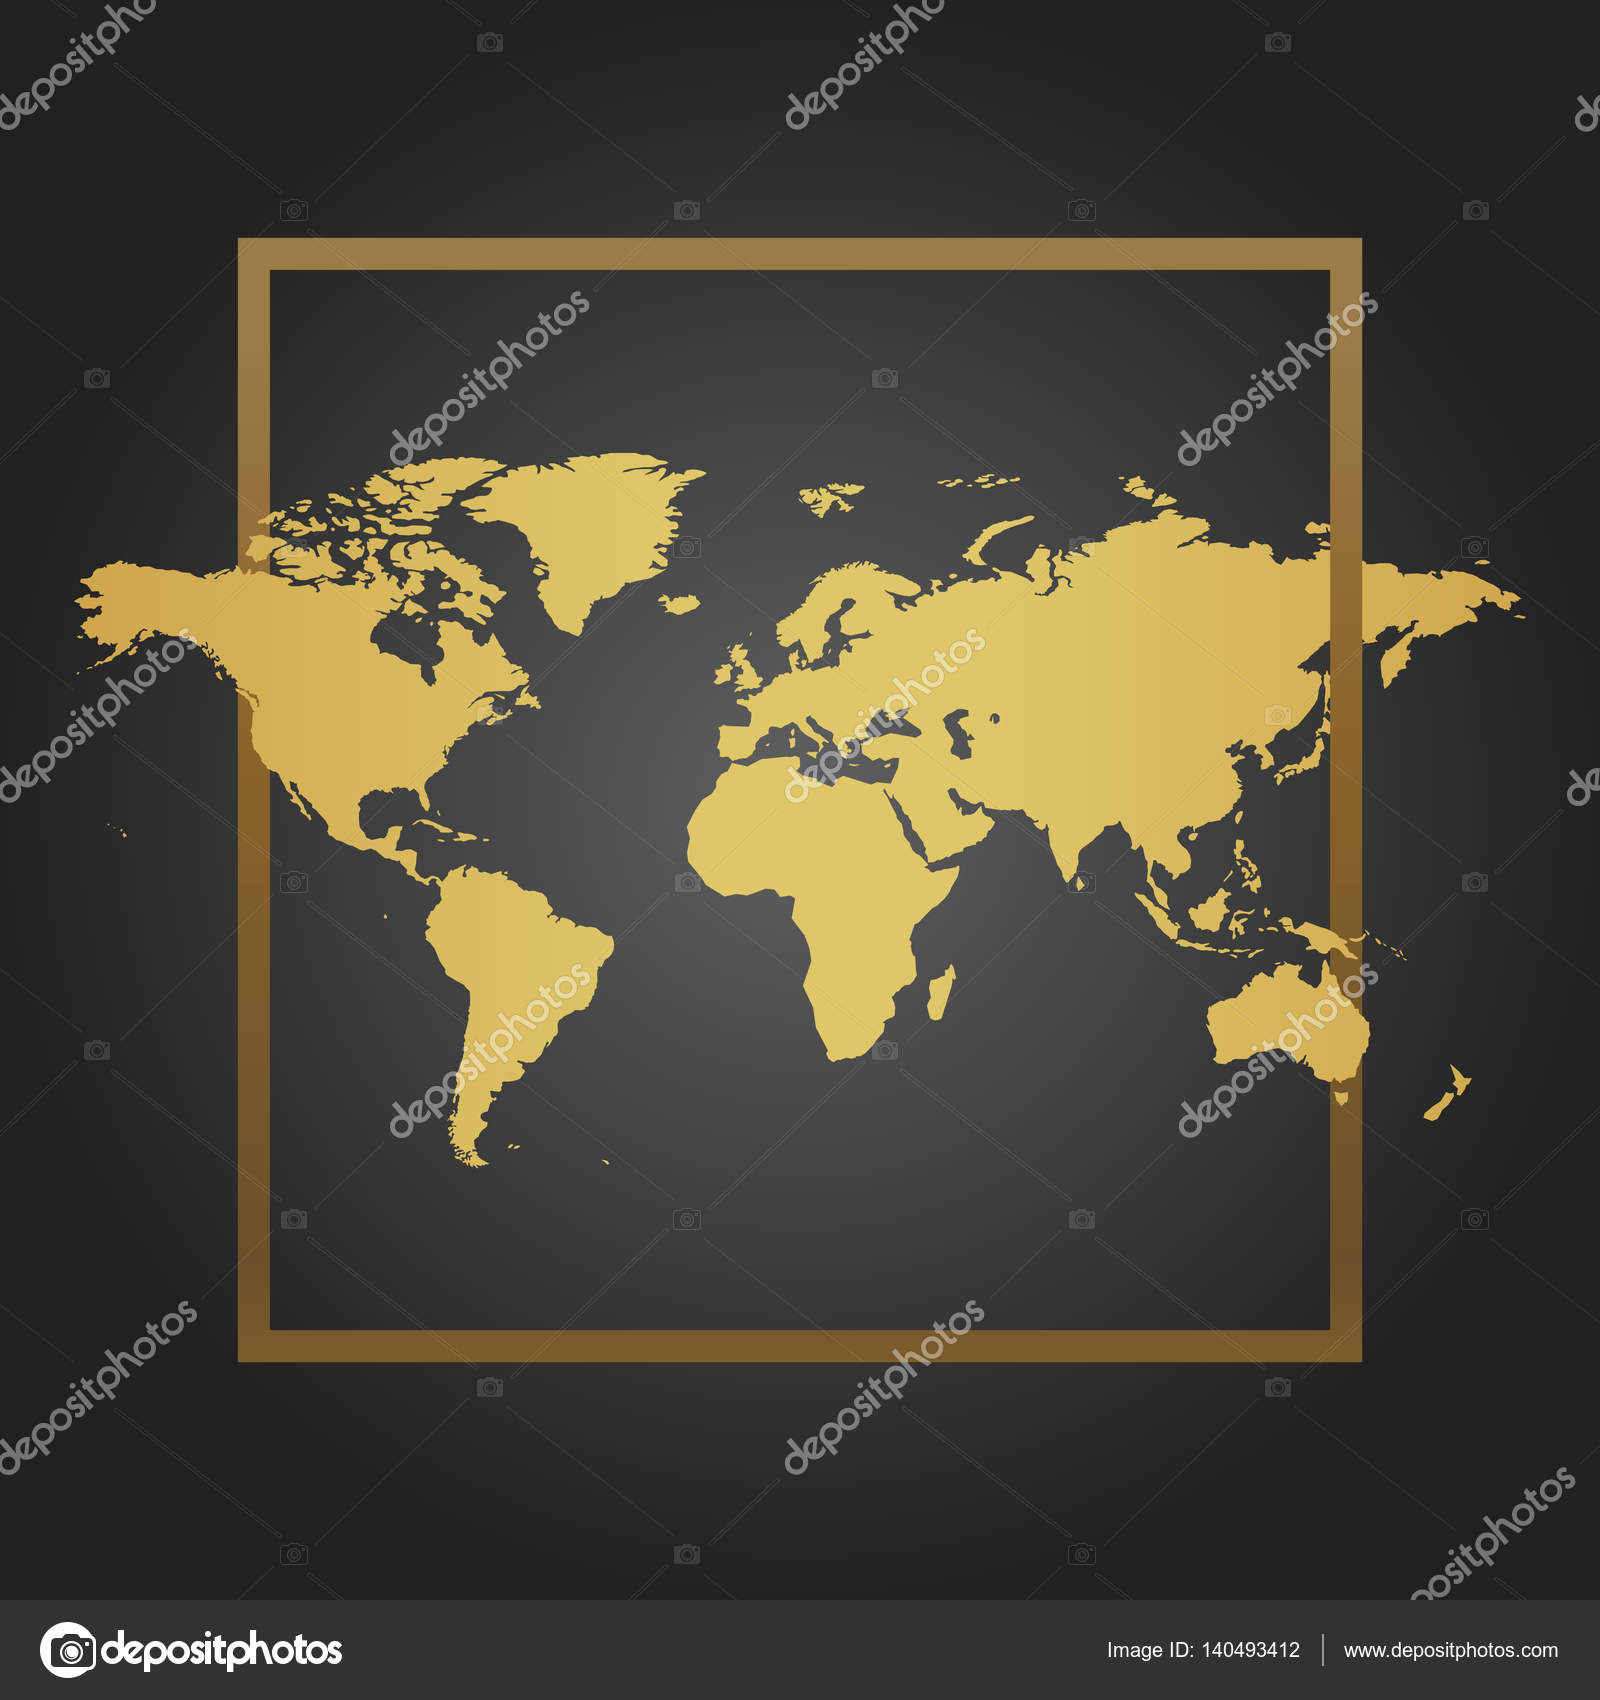 Golden political world map in black background with frame space for golden political world map in black background with frame space for text and quotes gumiabroncs Choice Image